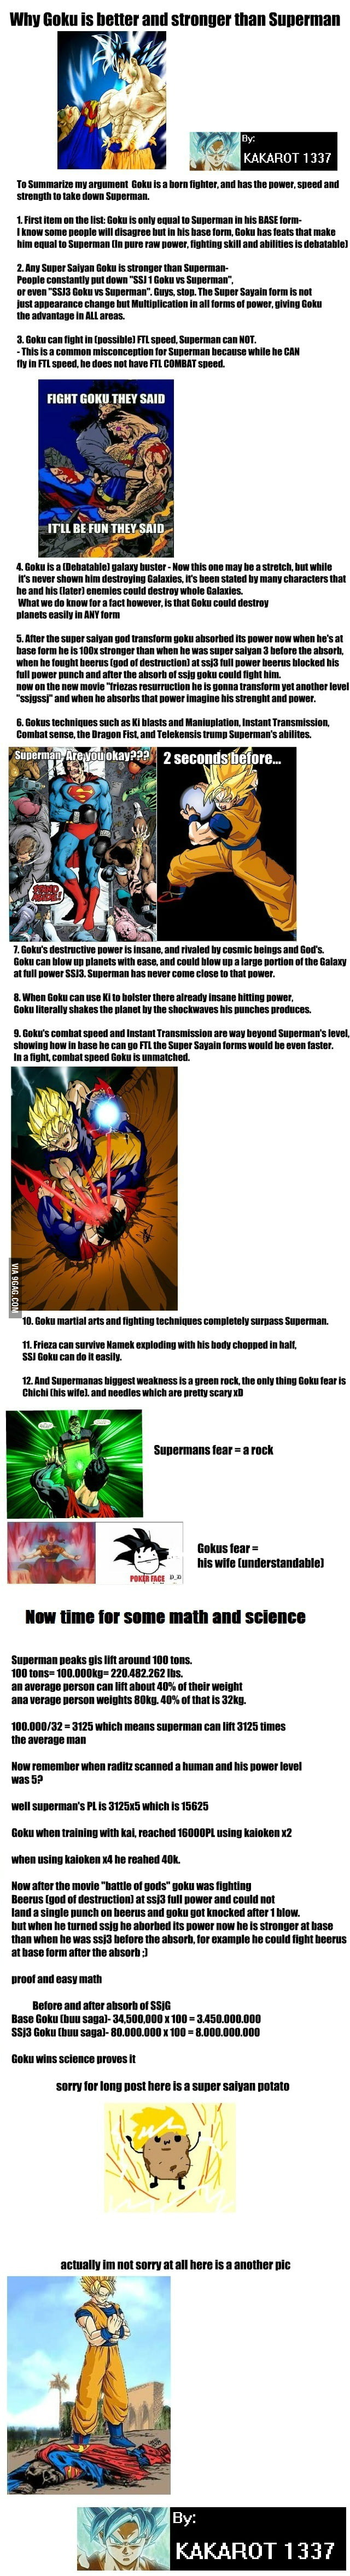 goku vs superman the truth that hurts dc fanboys 9gag